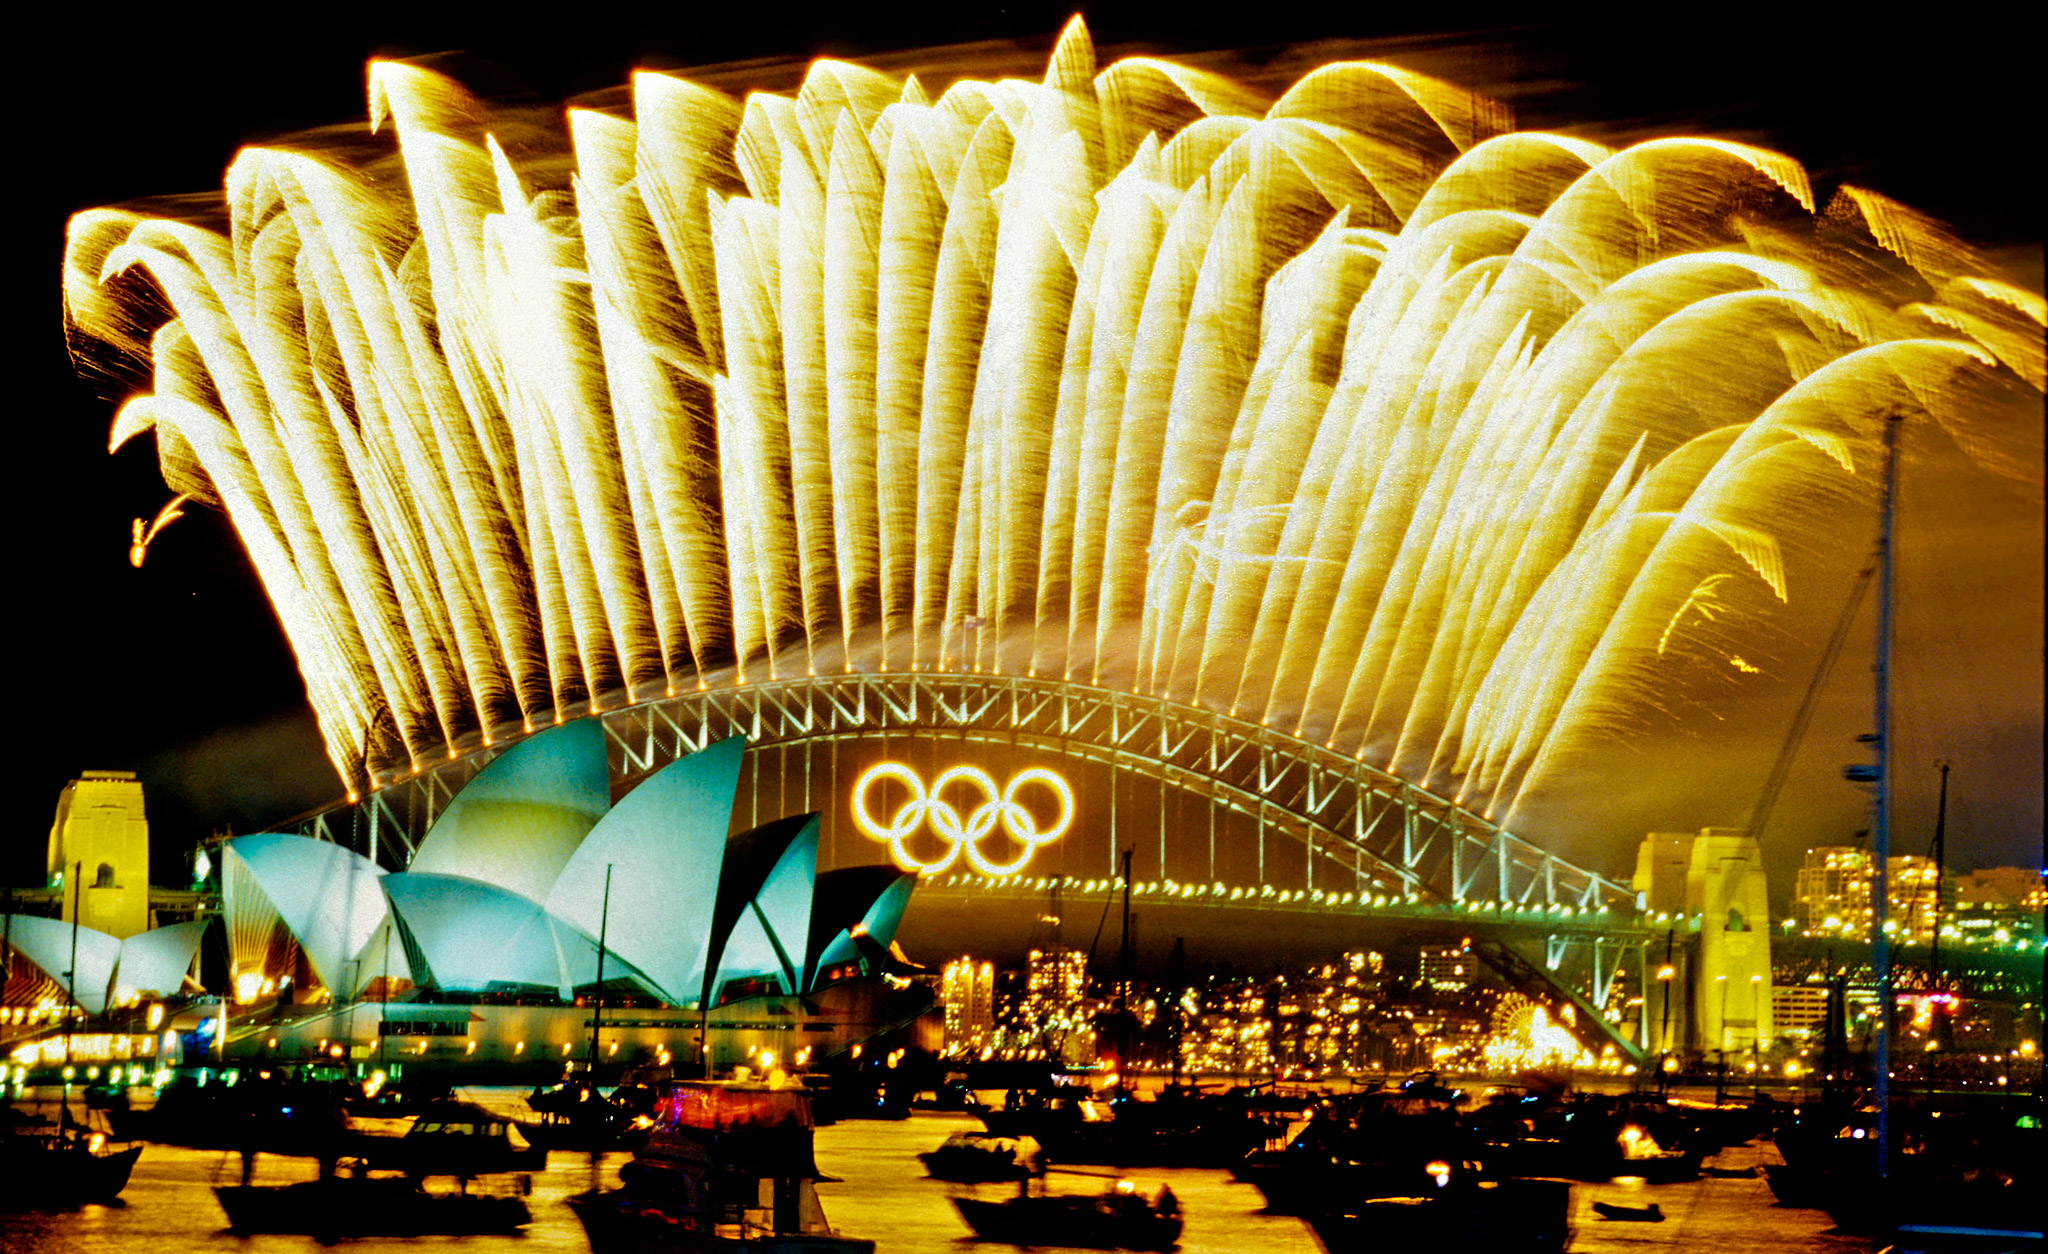 sport added to 2000 olympics in sydney-#6